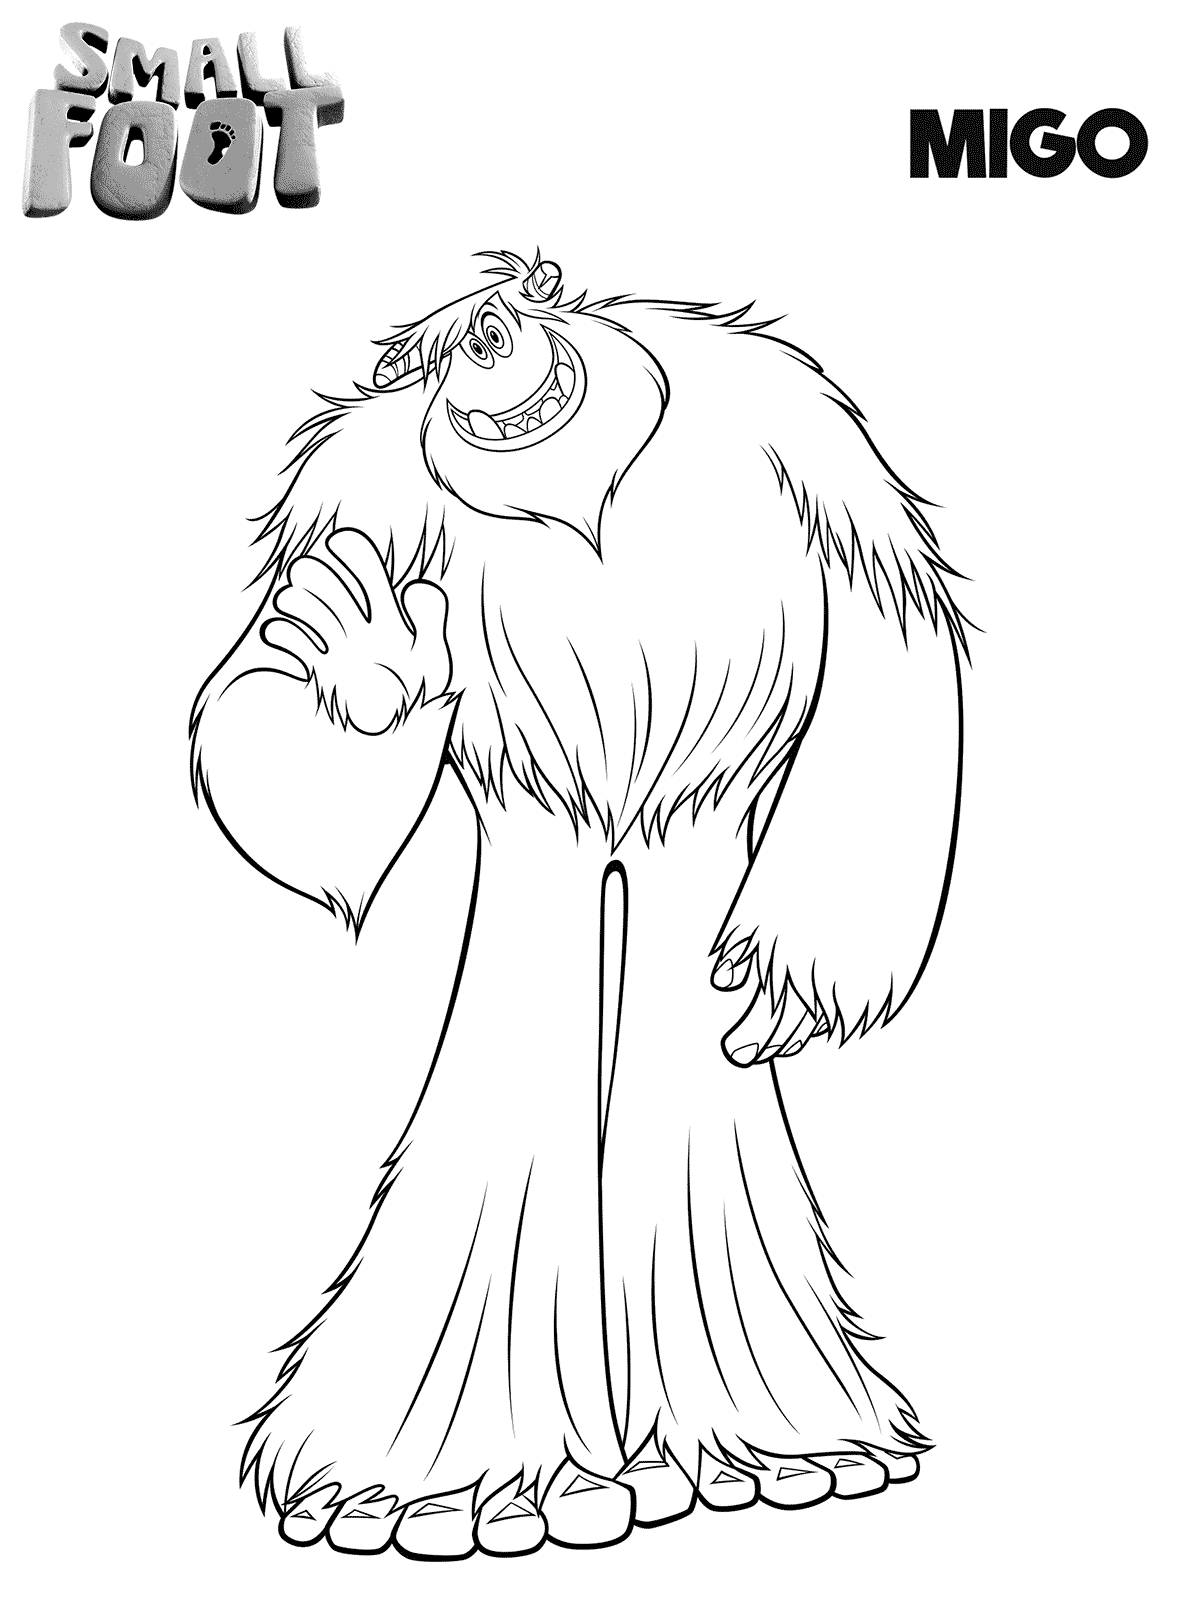 Smallfoot Coloring Pages Printable Migo Printable Coloring Pages Coloring Pages Cartoon Coloring Pages